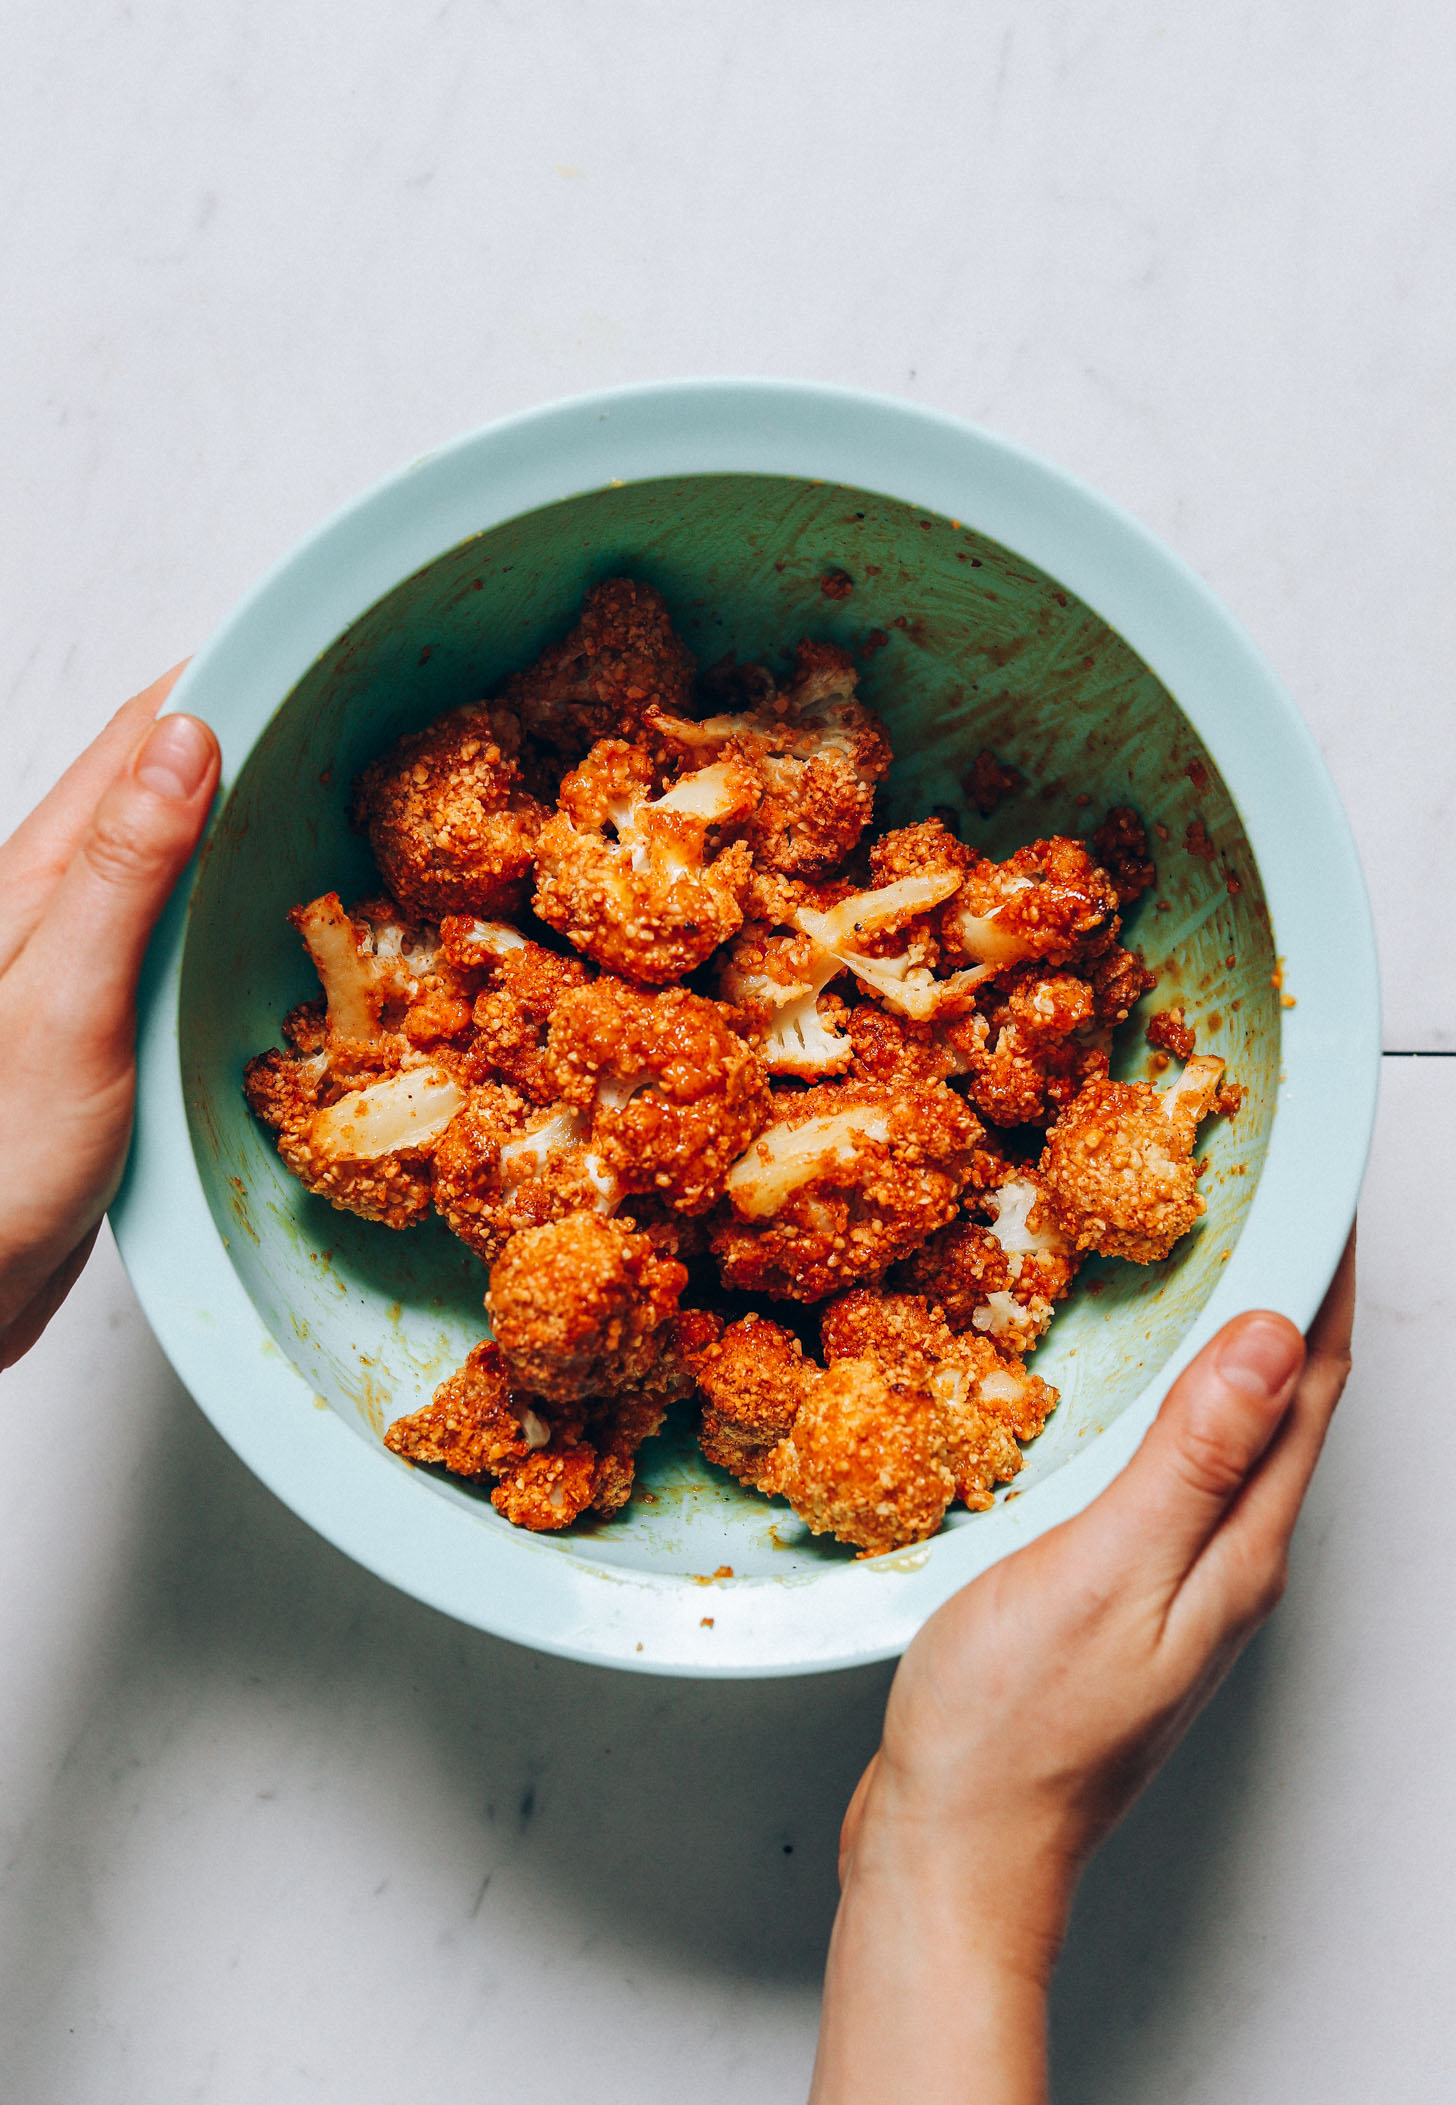 Holding the sides of a bowl of Crispy Breaded Cauliflower Wings topped with a sweet and spicy glaze